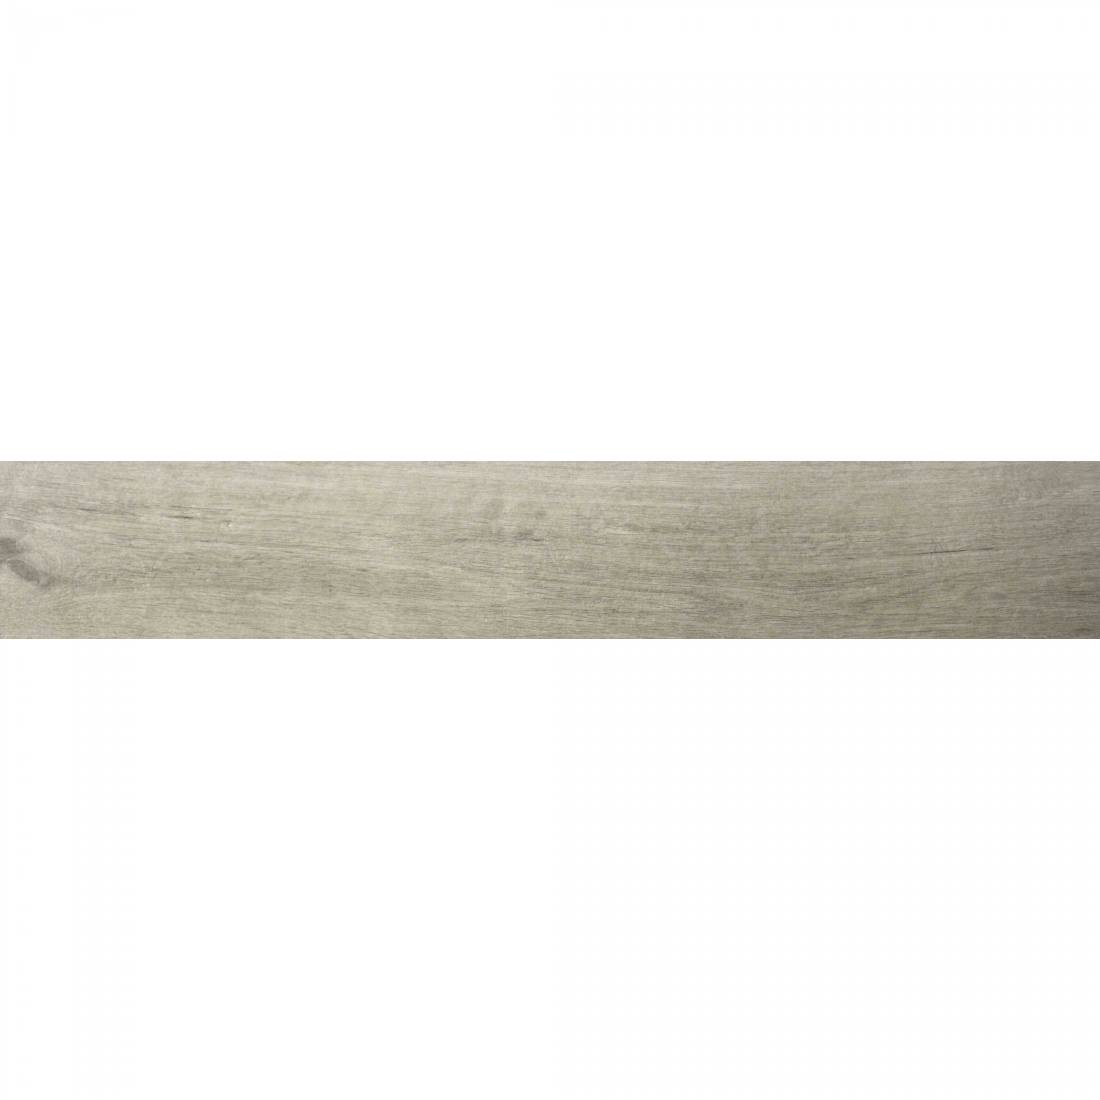 Timber 15x90 Grey Matt 1